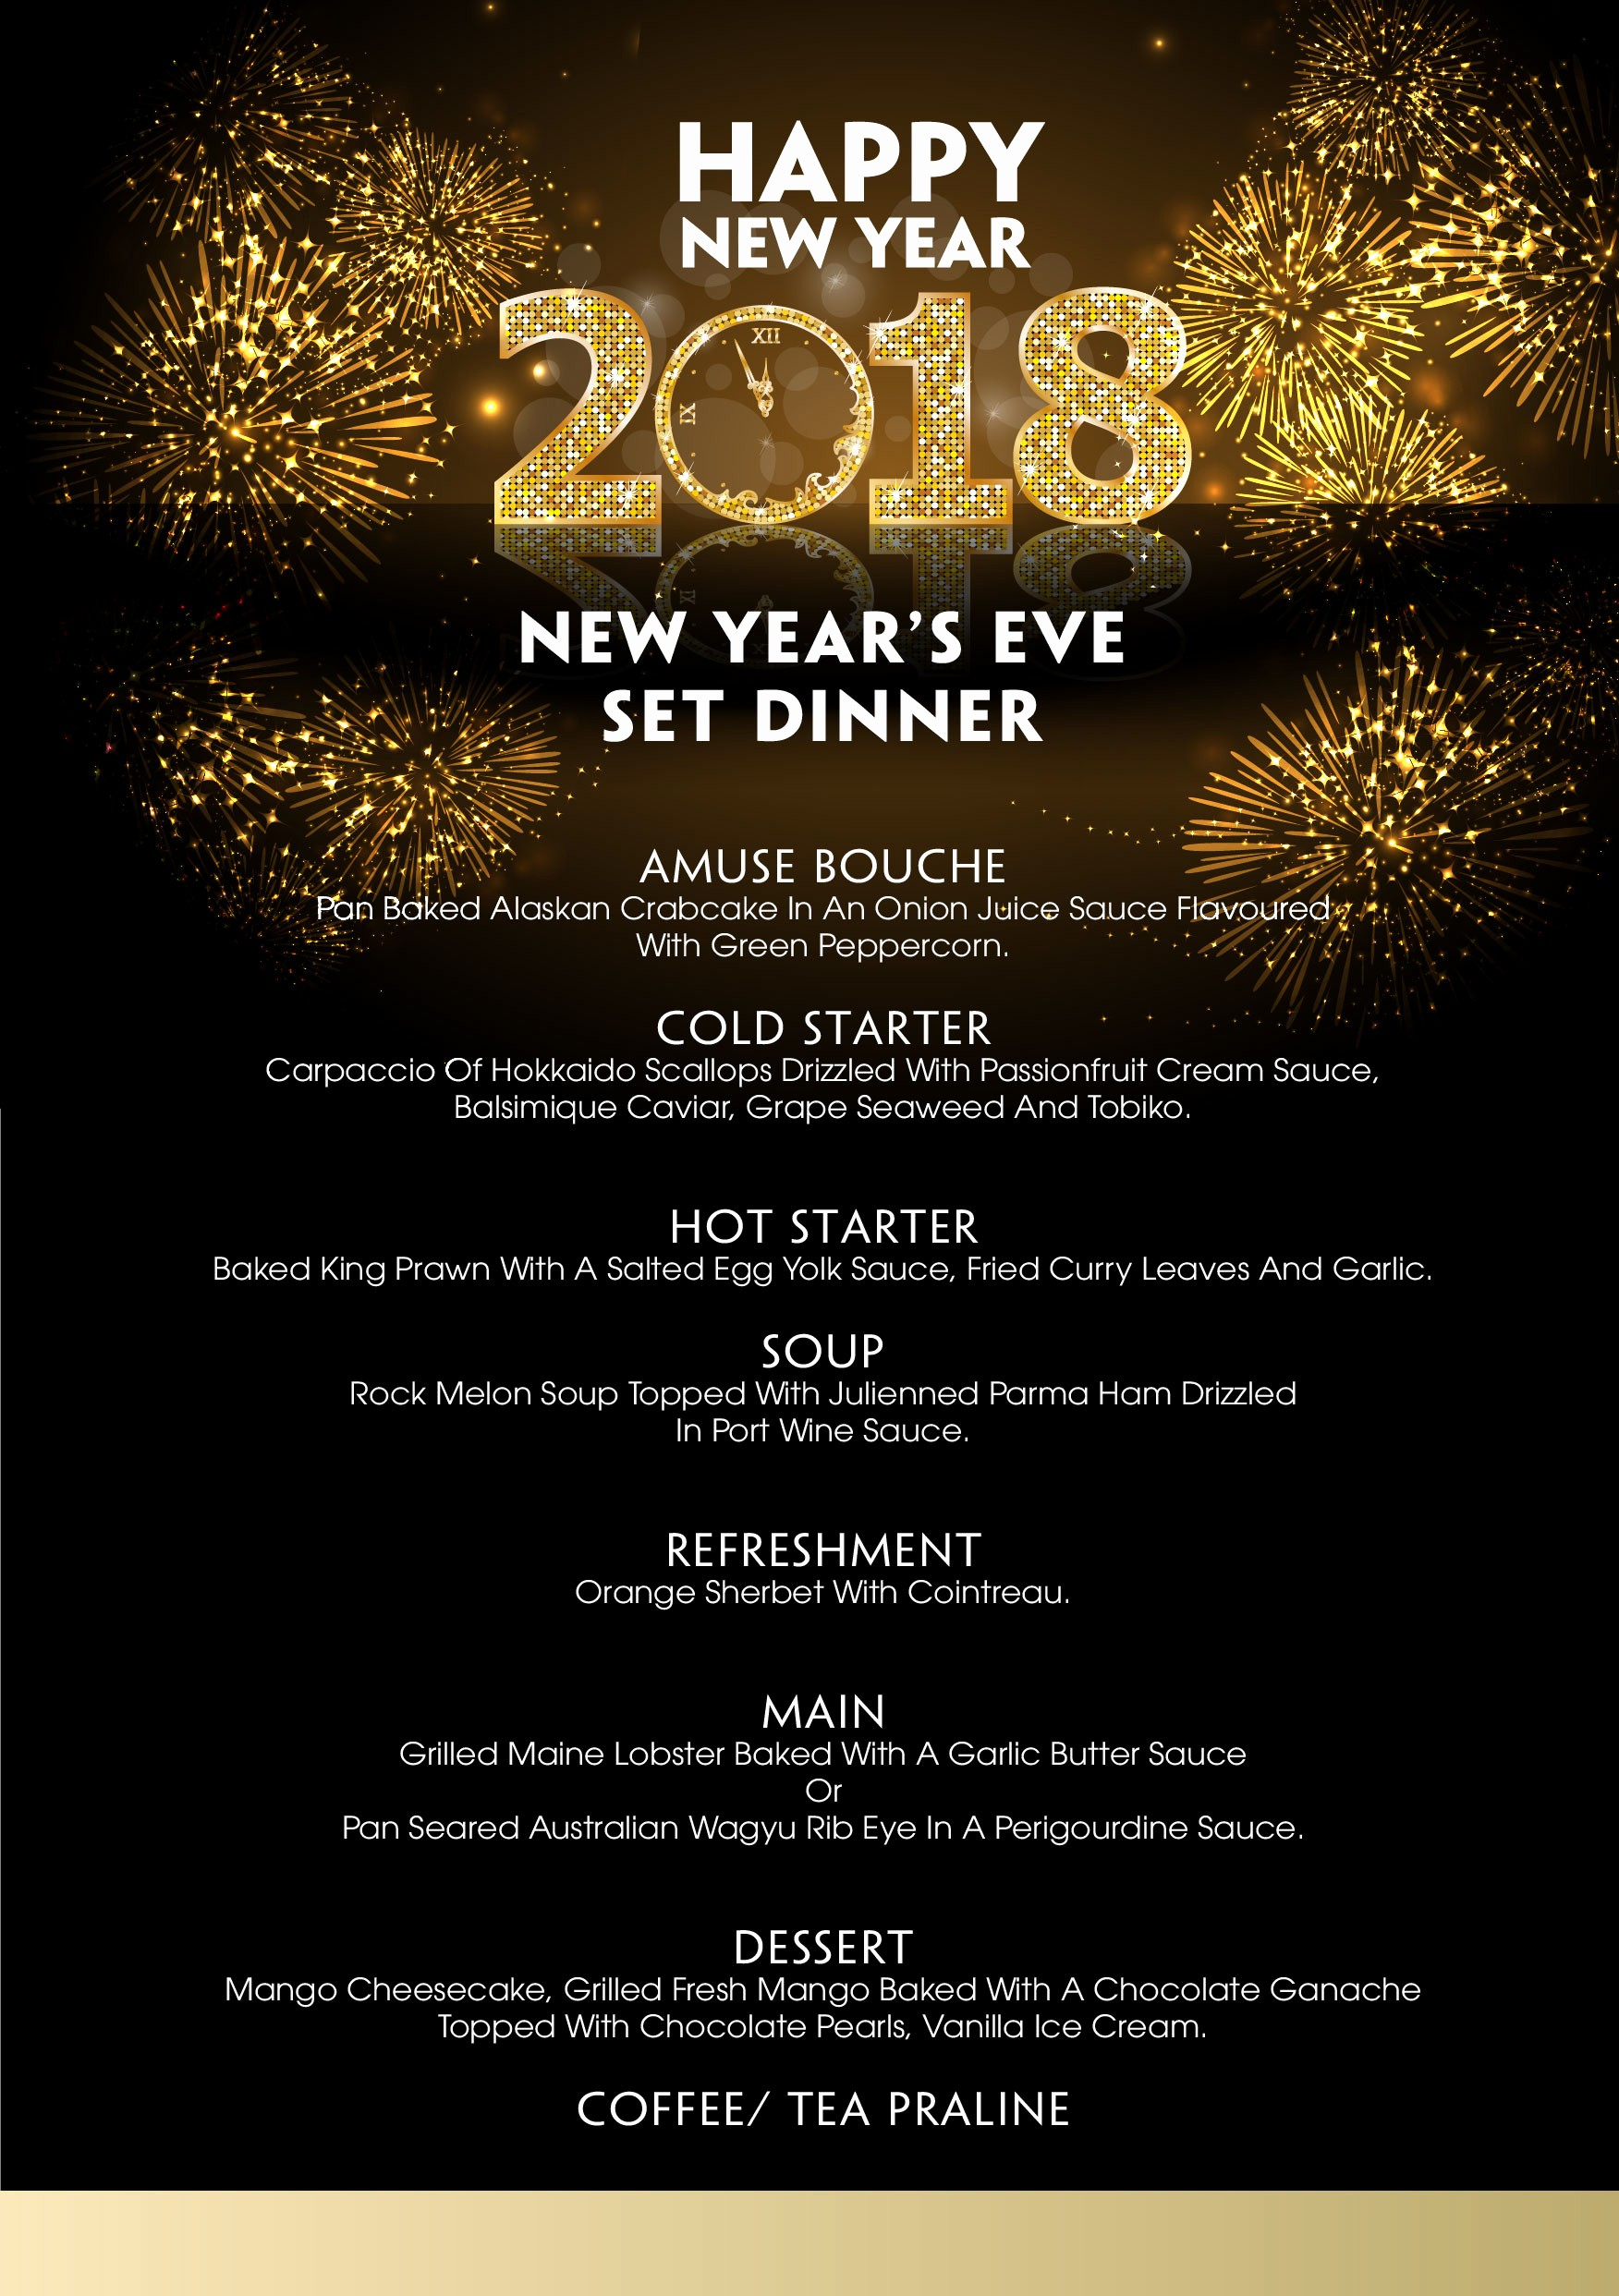 New Years Eve Menu Template Elegant New Year Newar Menu Idea forars Eve Luncheonnew Quick